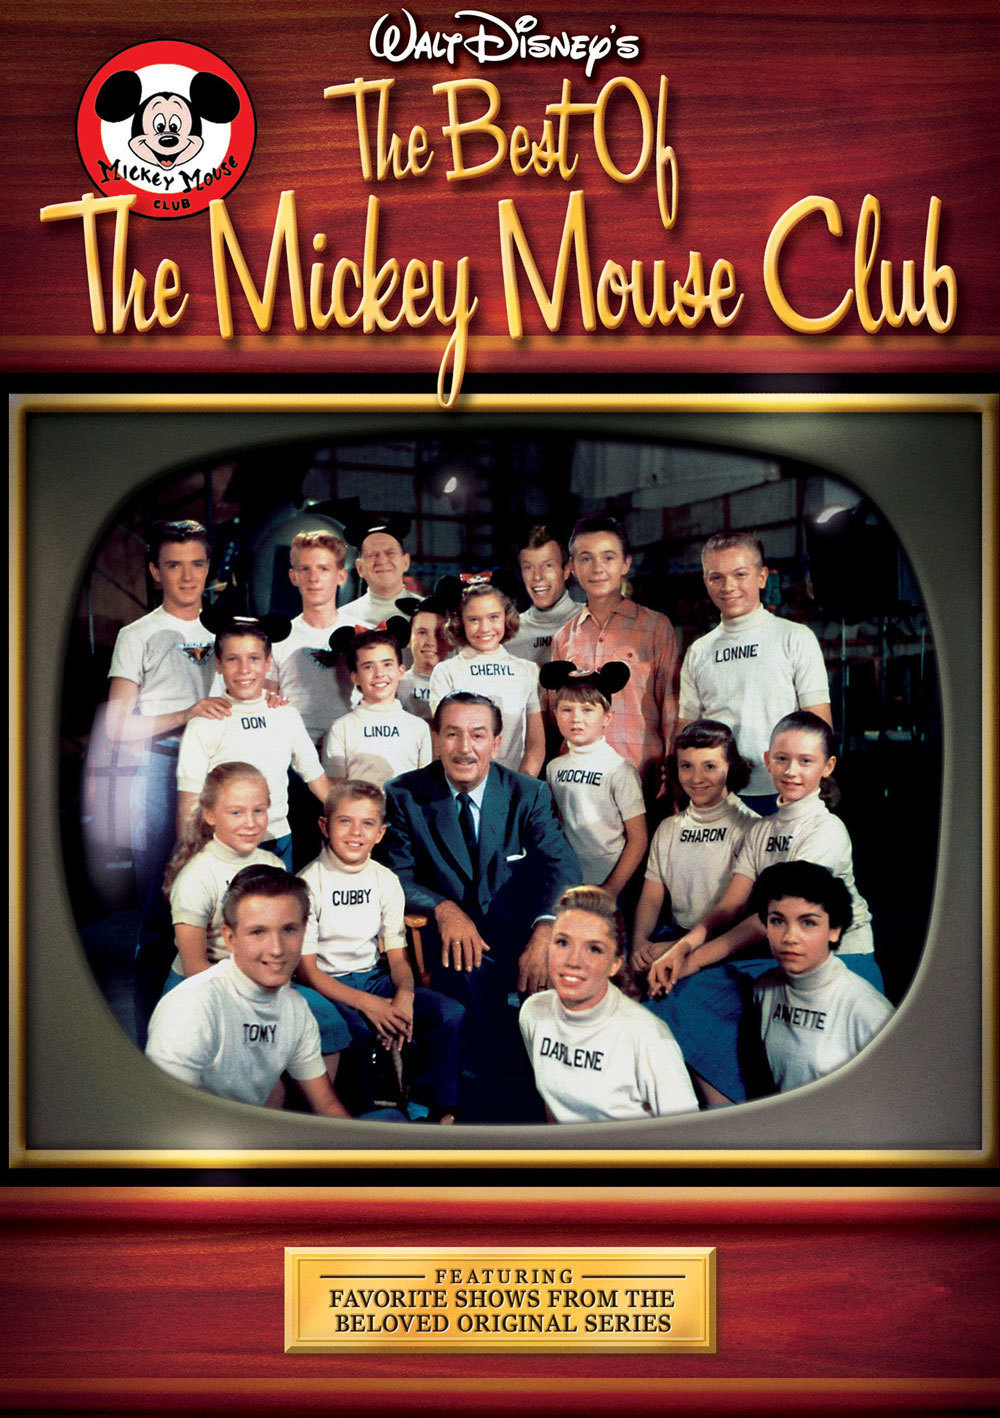 The Mickey Mouse Club Products